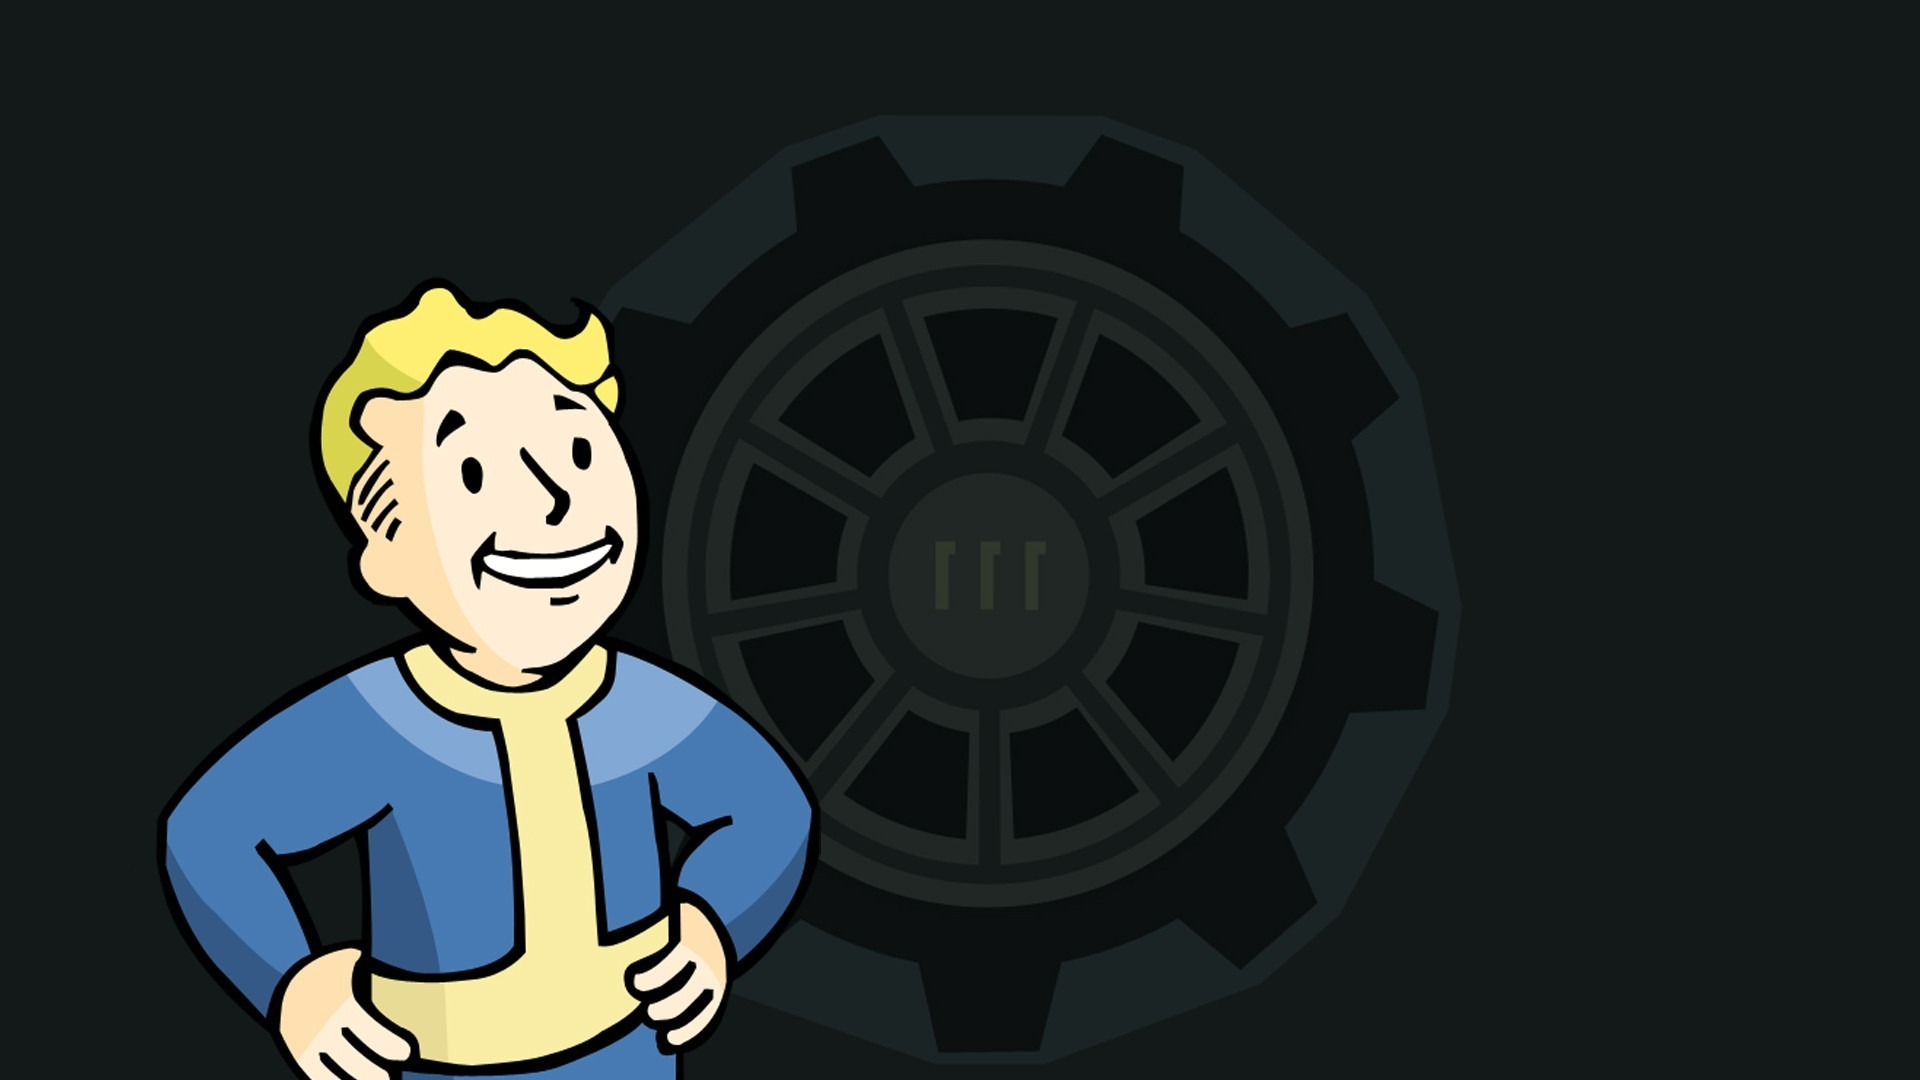 1920x1080 Fallout 4, Video Games, Vault 111, Vault Boy, Fallout, Bethesda Softworks,  Apocalyptic Wallpapers HD / Desktop and Mobile Backgrounds